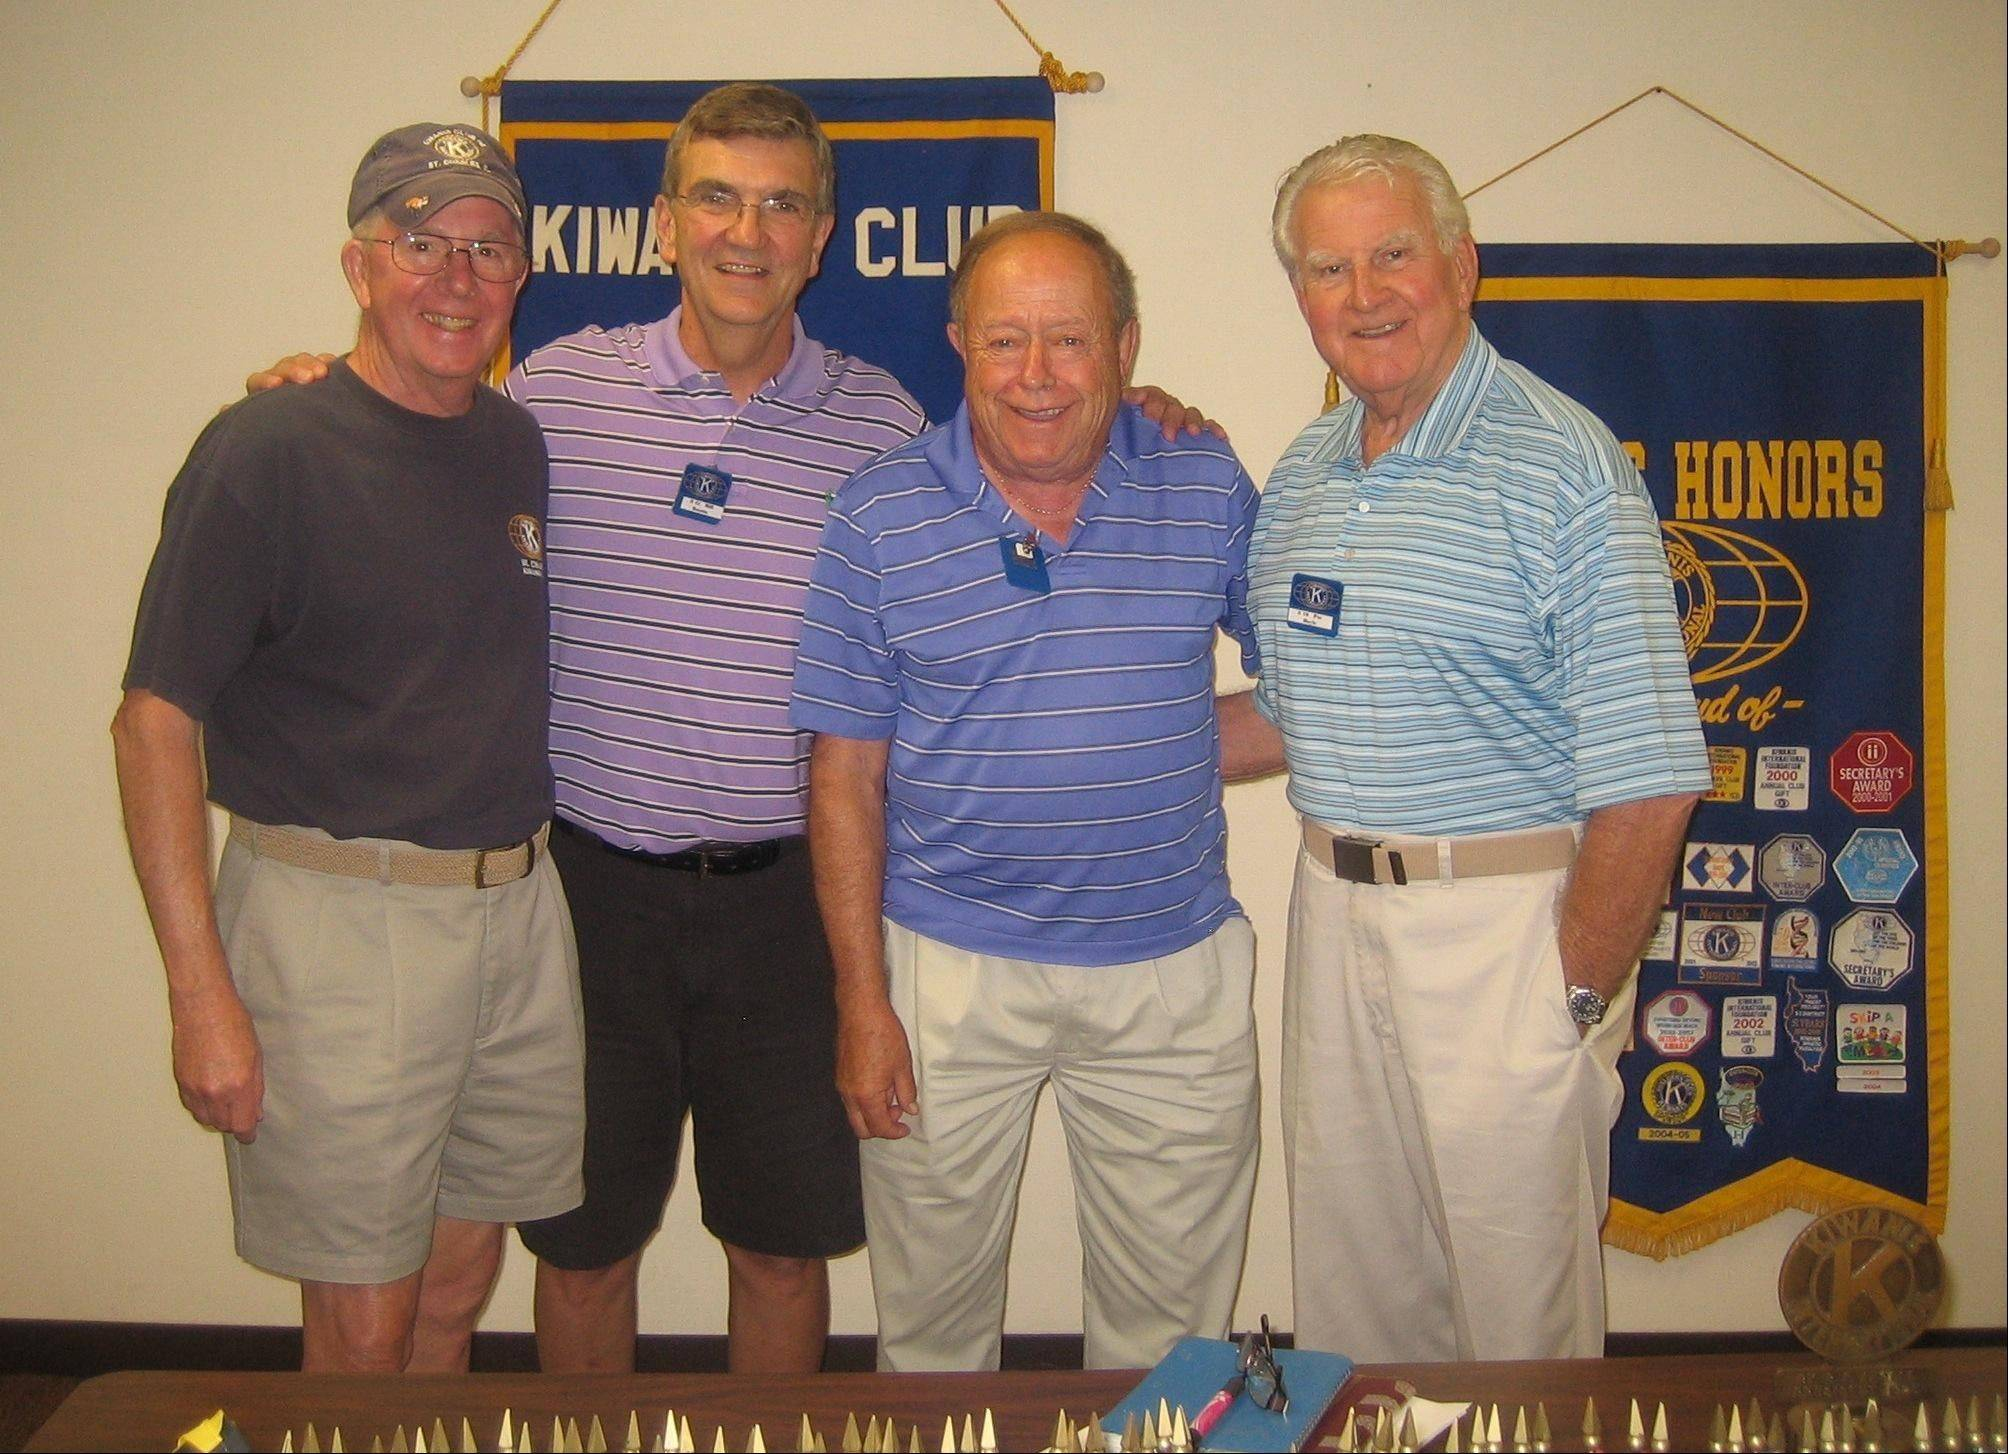 Meet the 2011 Peanut Committee, from left, Bill Cox, co-chair; Bill Knotts, 2011 Peanut chairman; Stew Liechte; and Pat Boyle. These Kiwanians are working to coordinate the club�s peanut fundraiser to raise money for local children�s agencies.